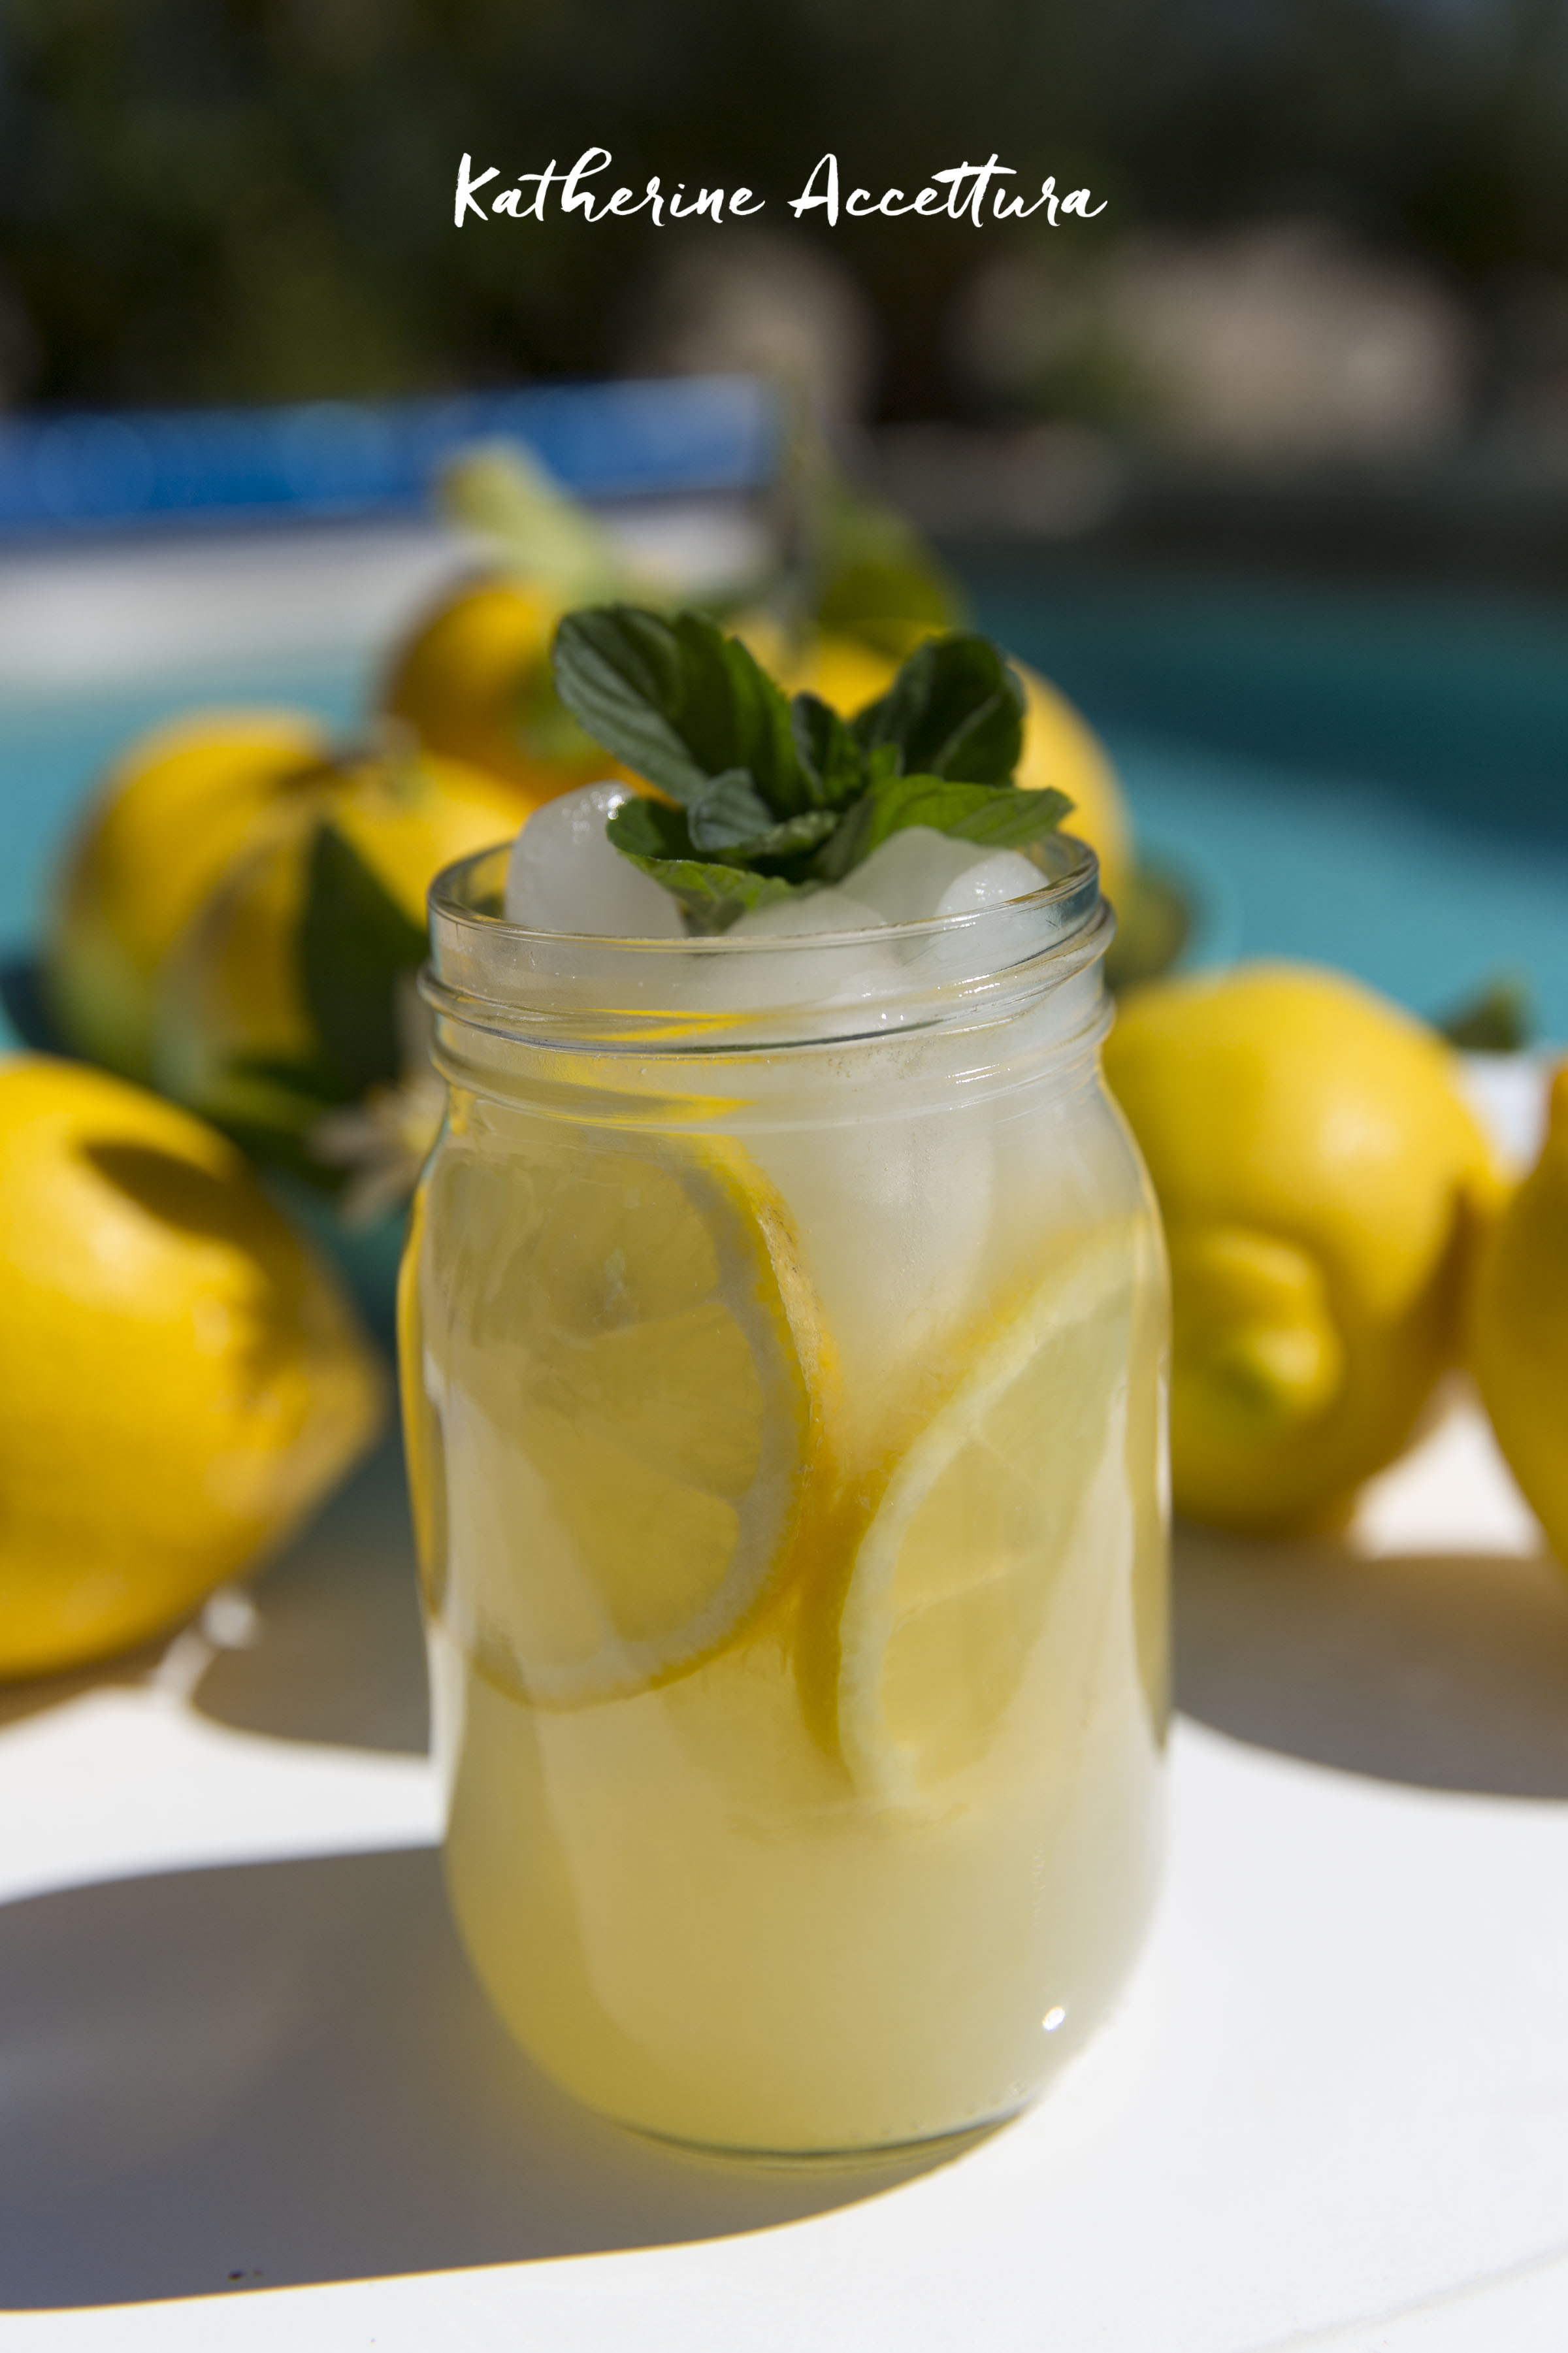 Check out this super tasty fresh lemonade recipe!